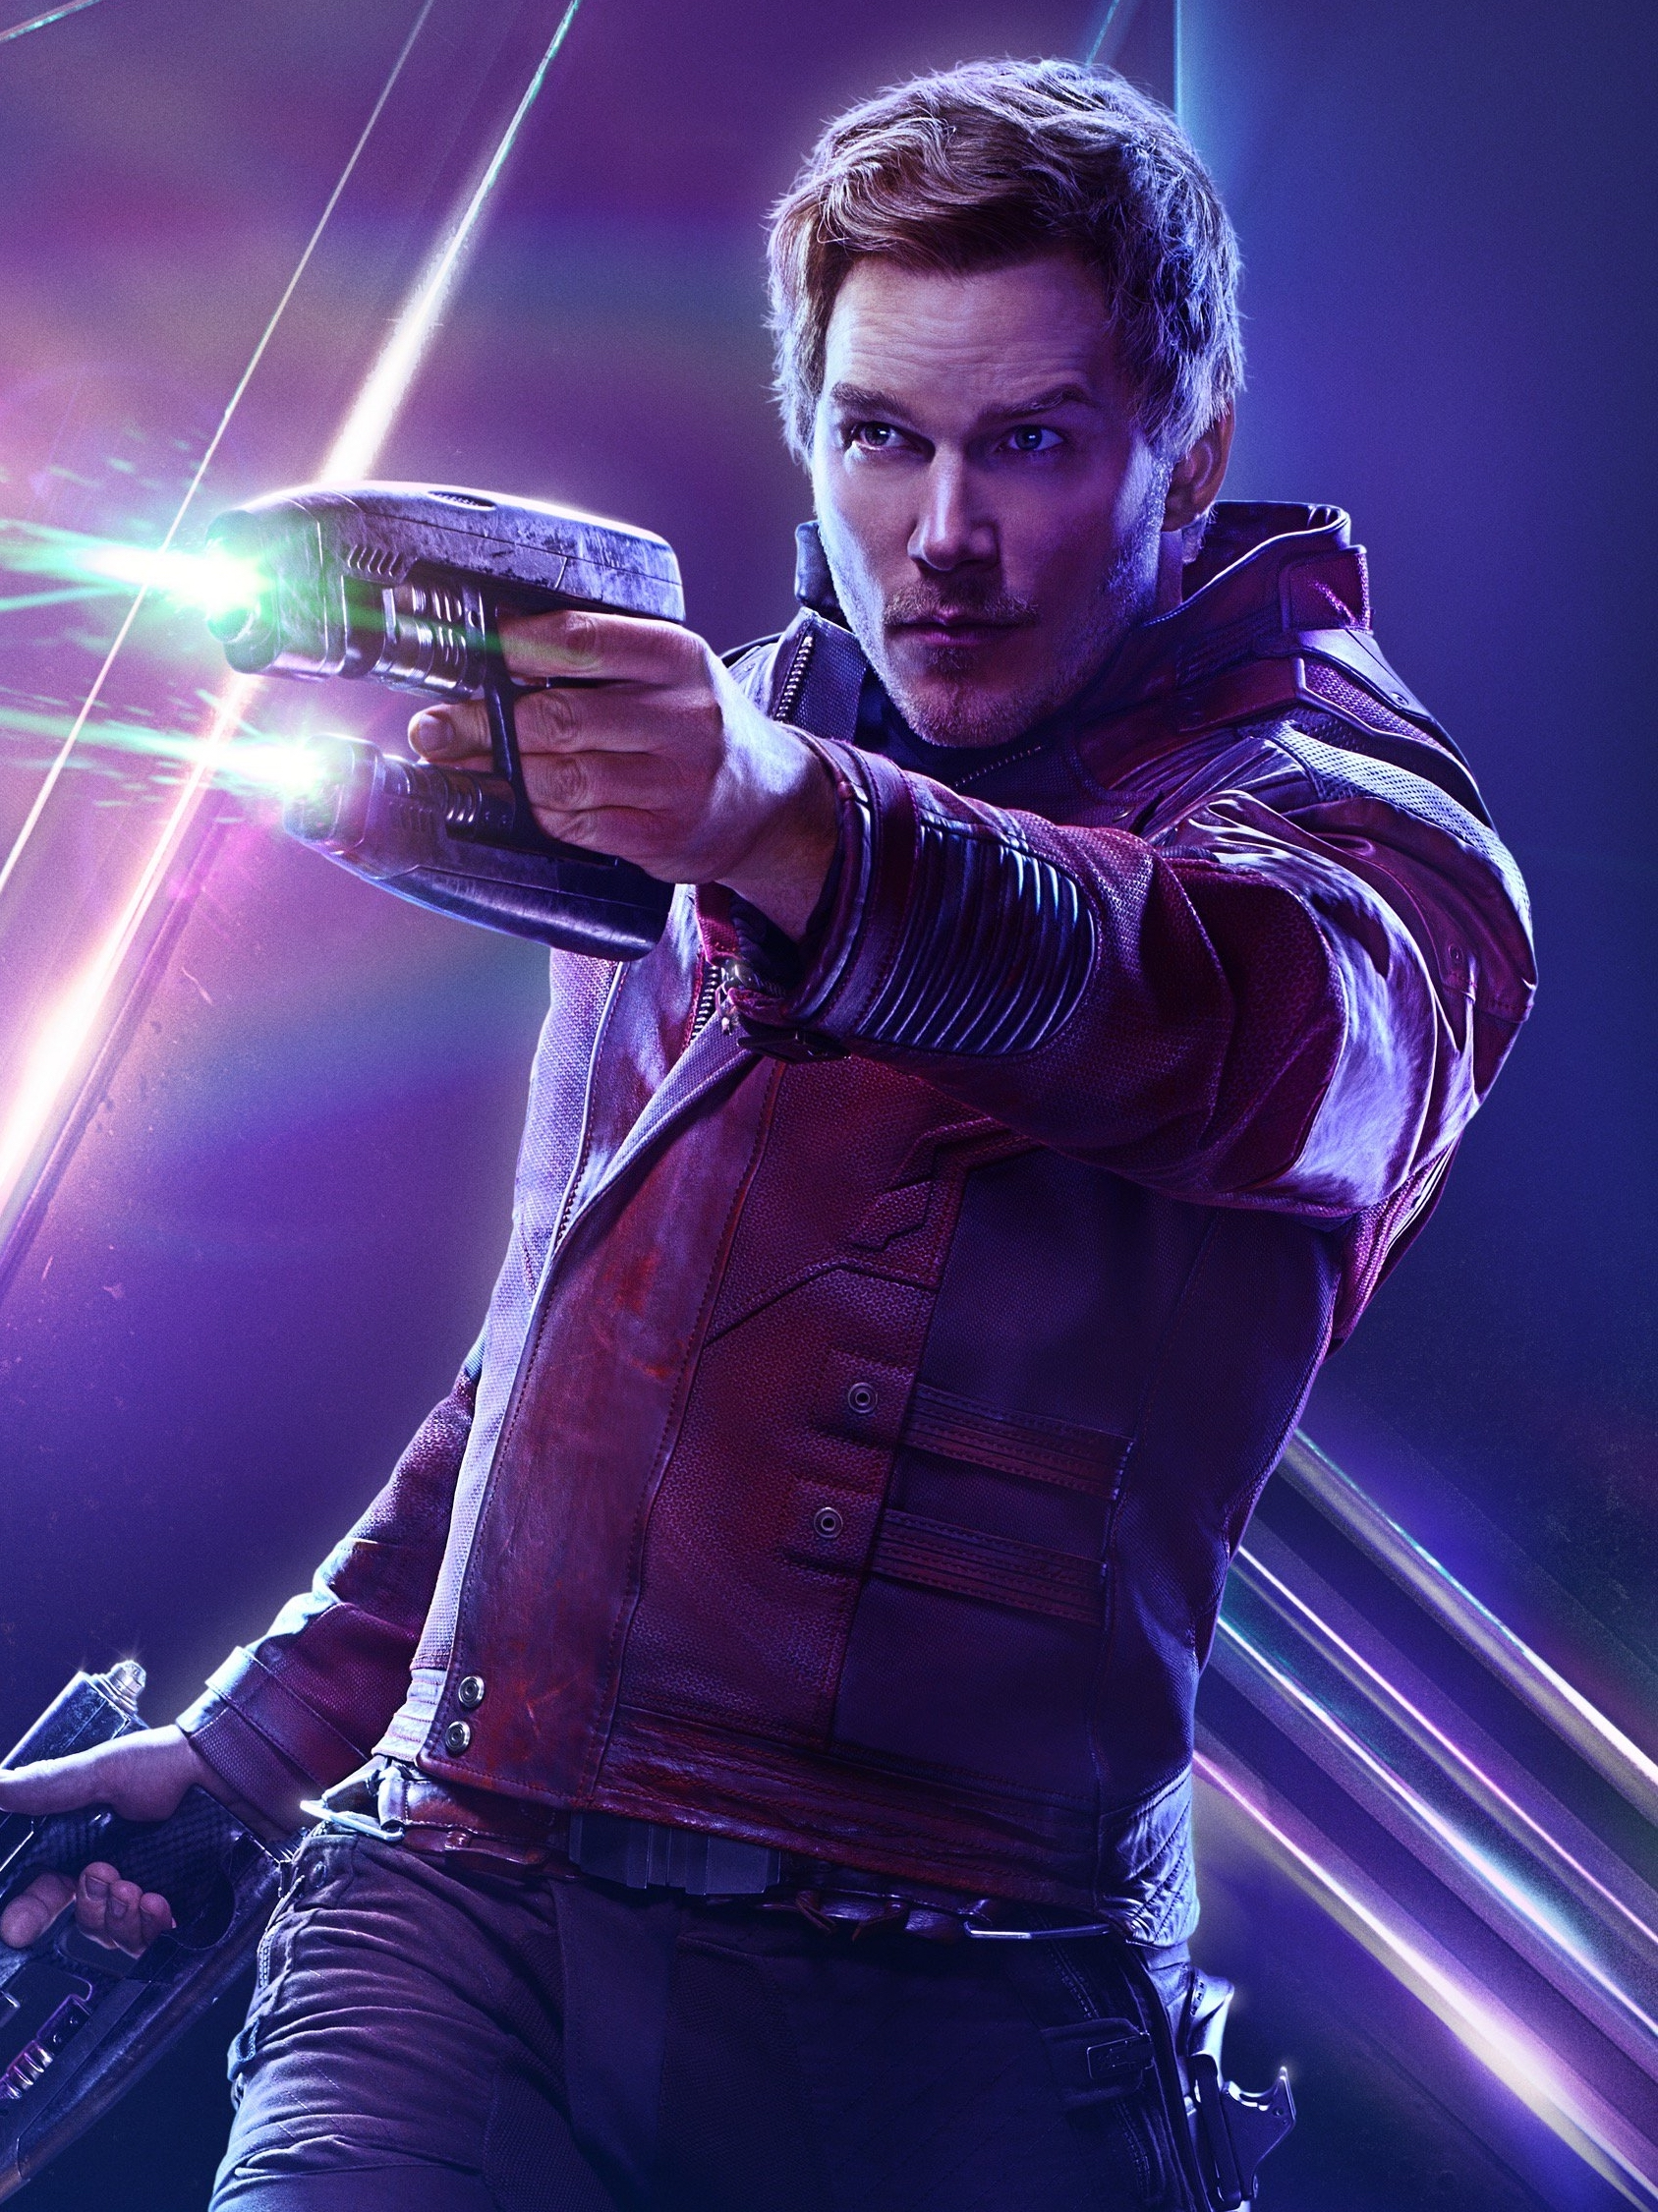 Peter Quill, Star-Lord